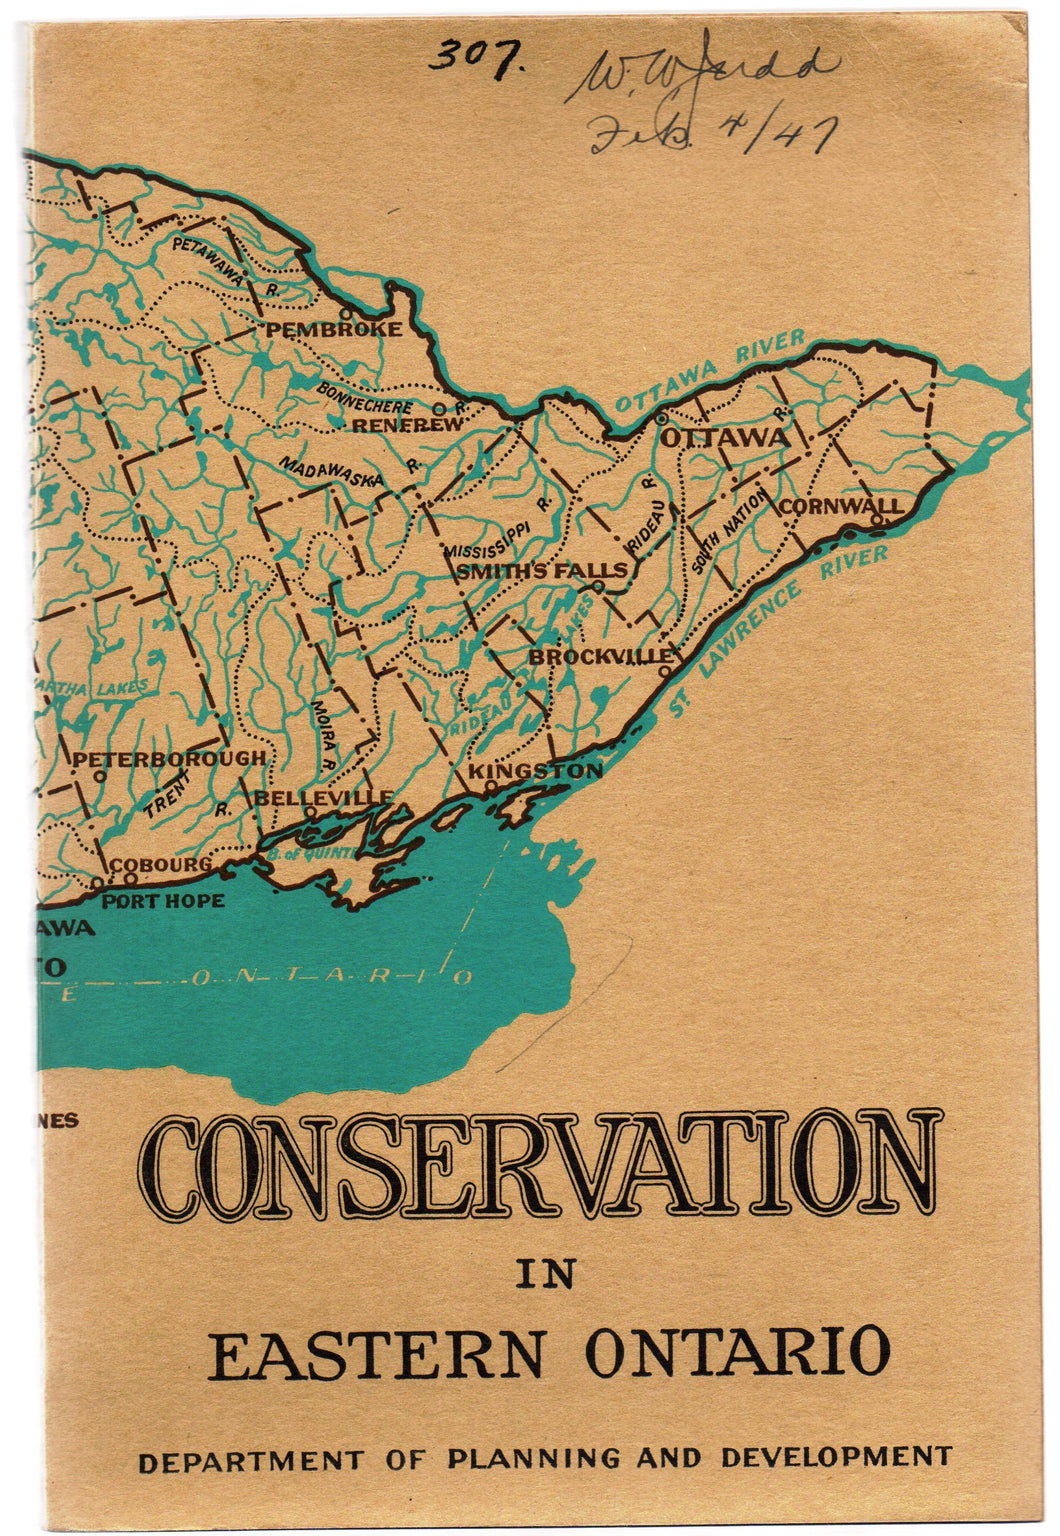 Conservation in Eastern Ontario